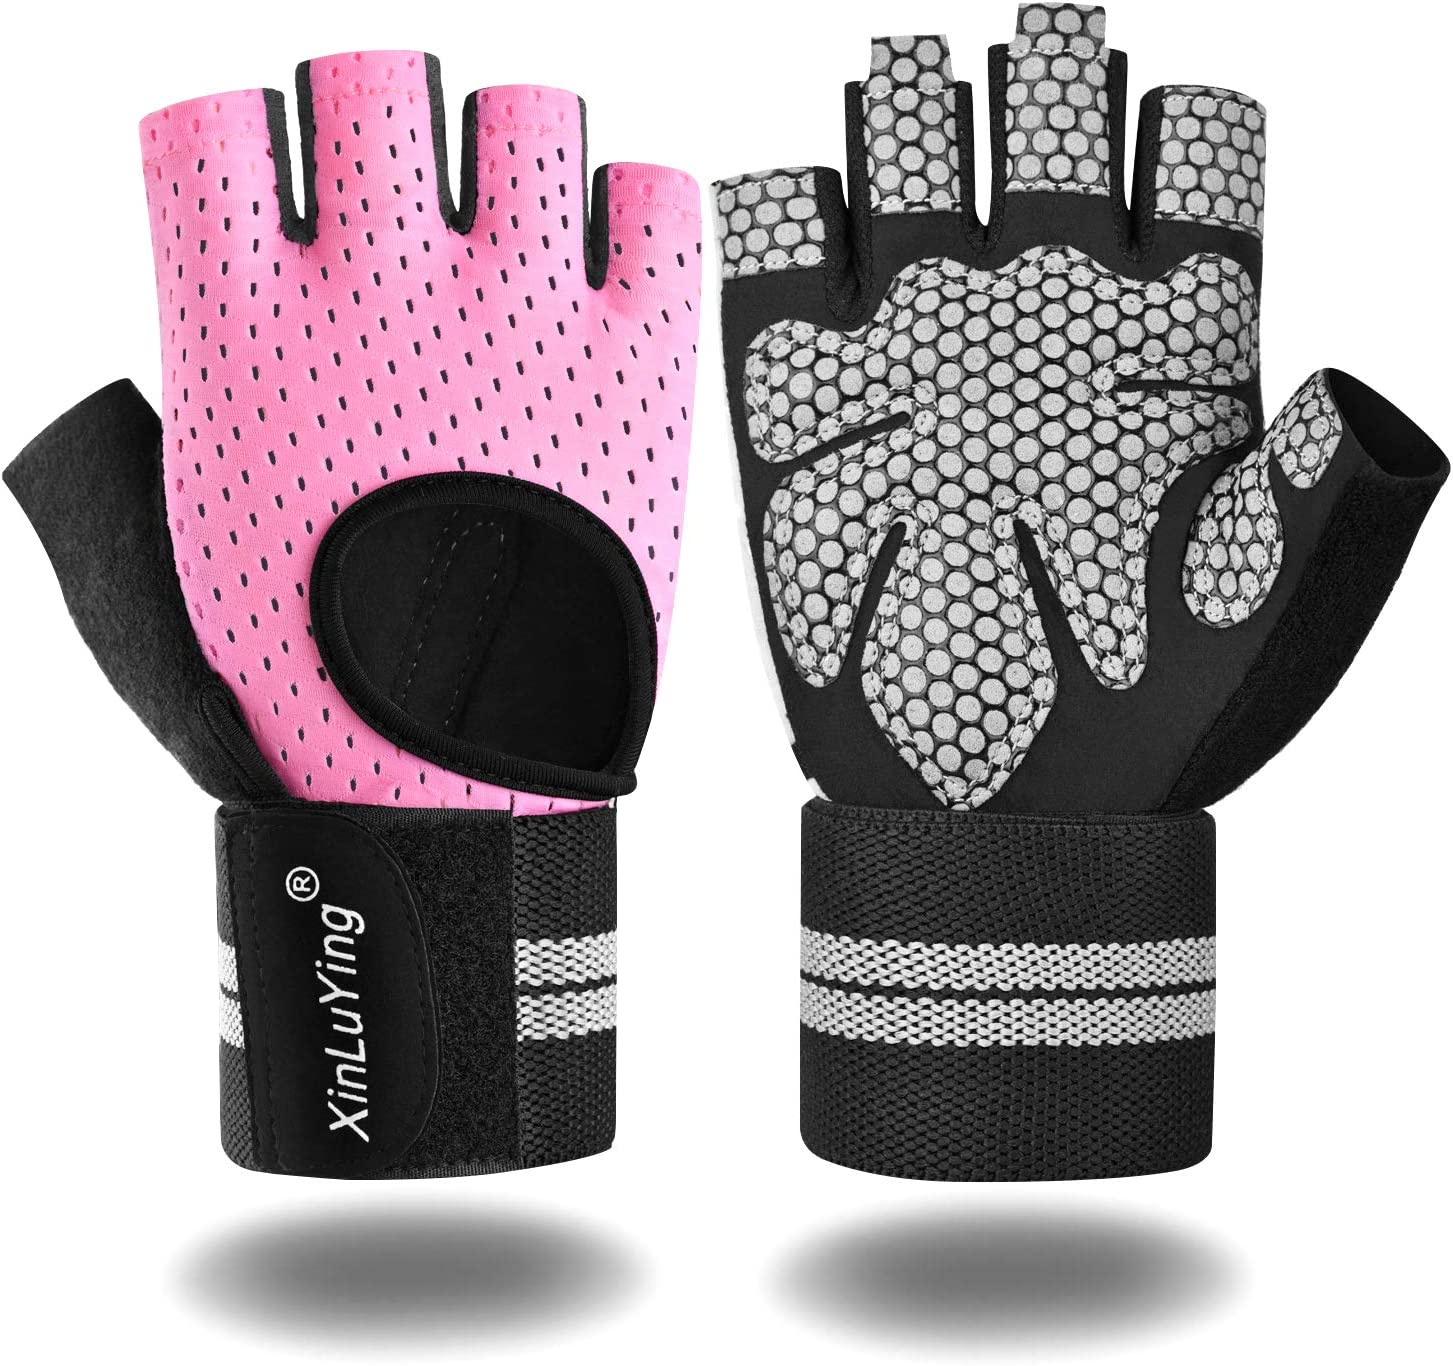 Xinluying Workout Gloves for Men Ranking TOP8 - Women It is very popular Training Gym